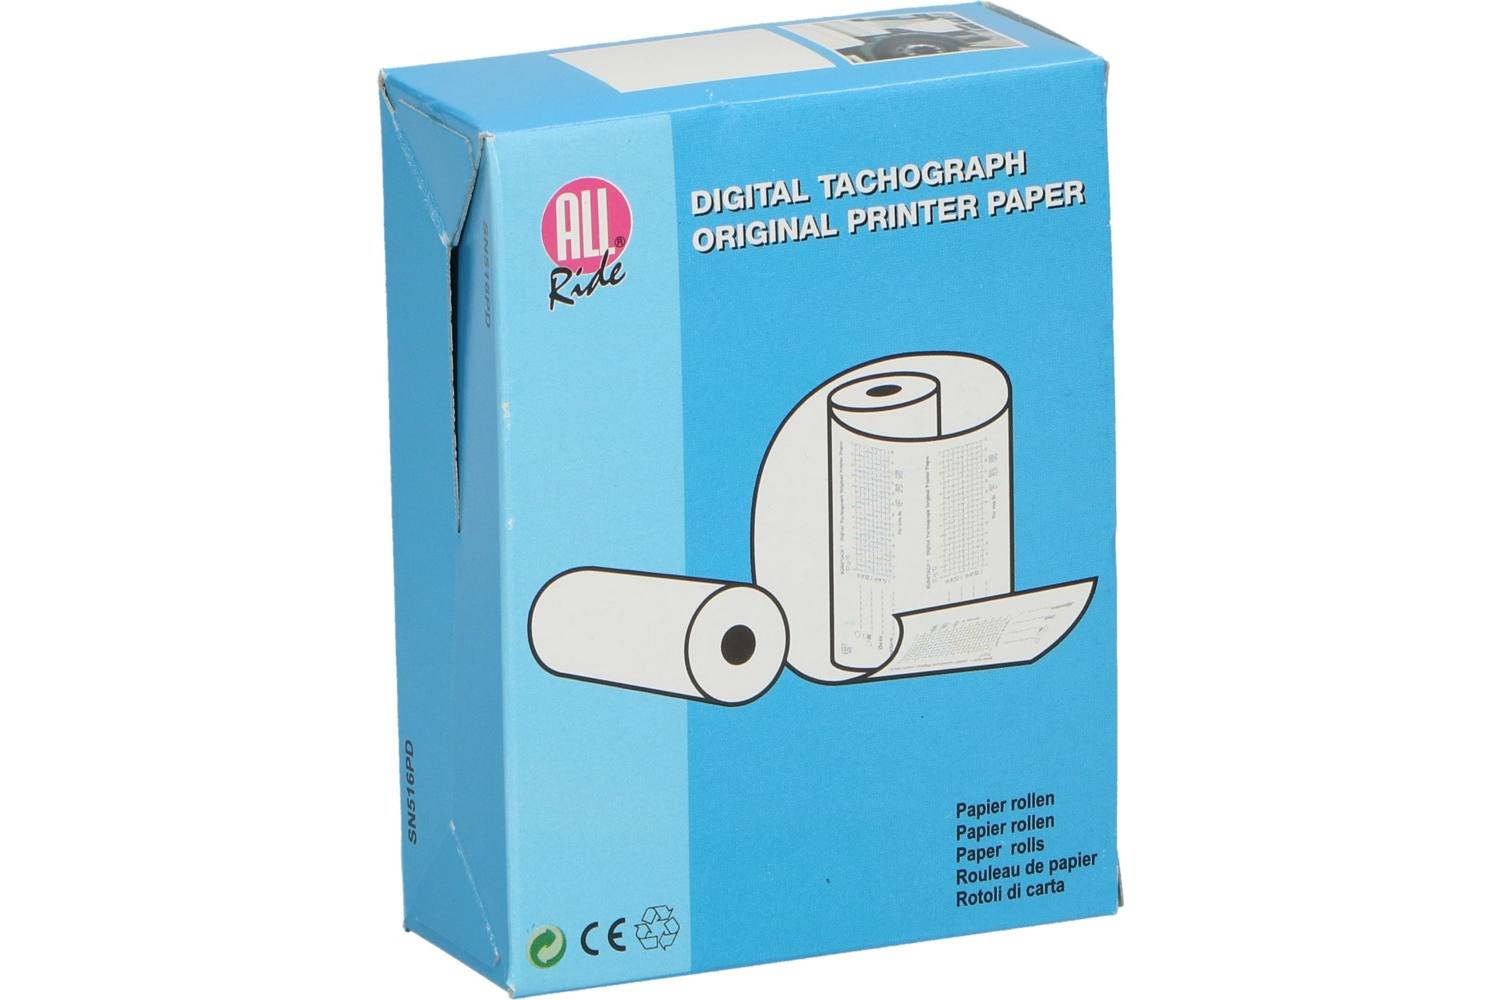 Digital tacho paper, AllRide, on roll 1